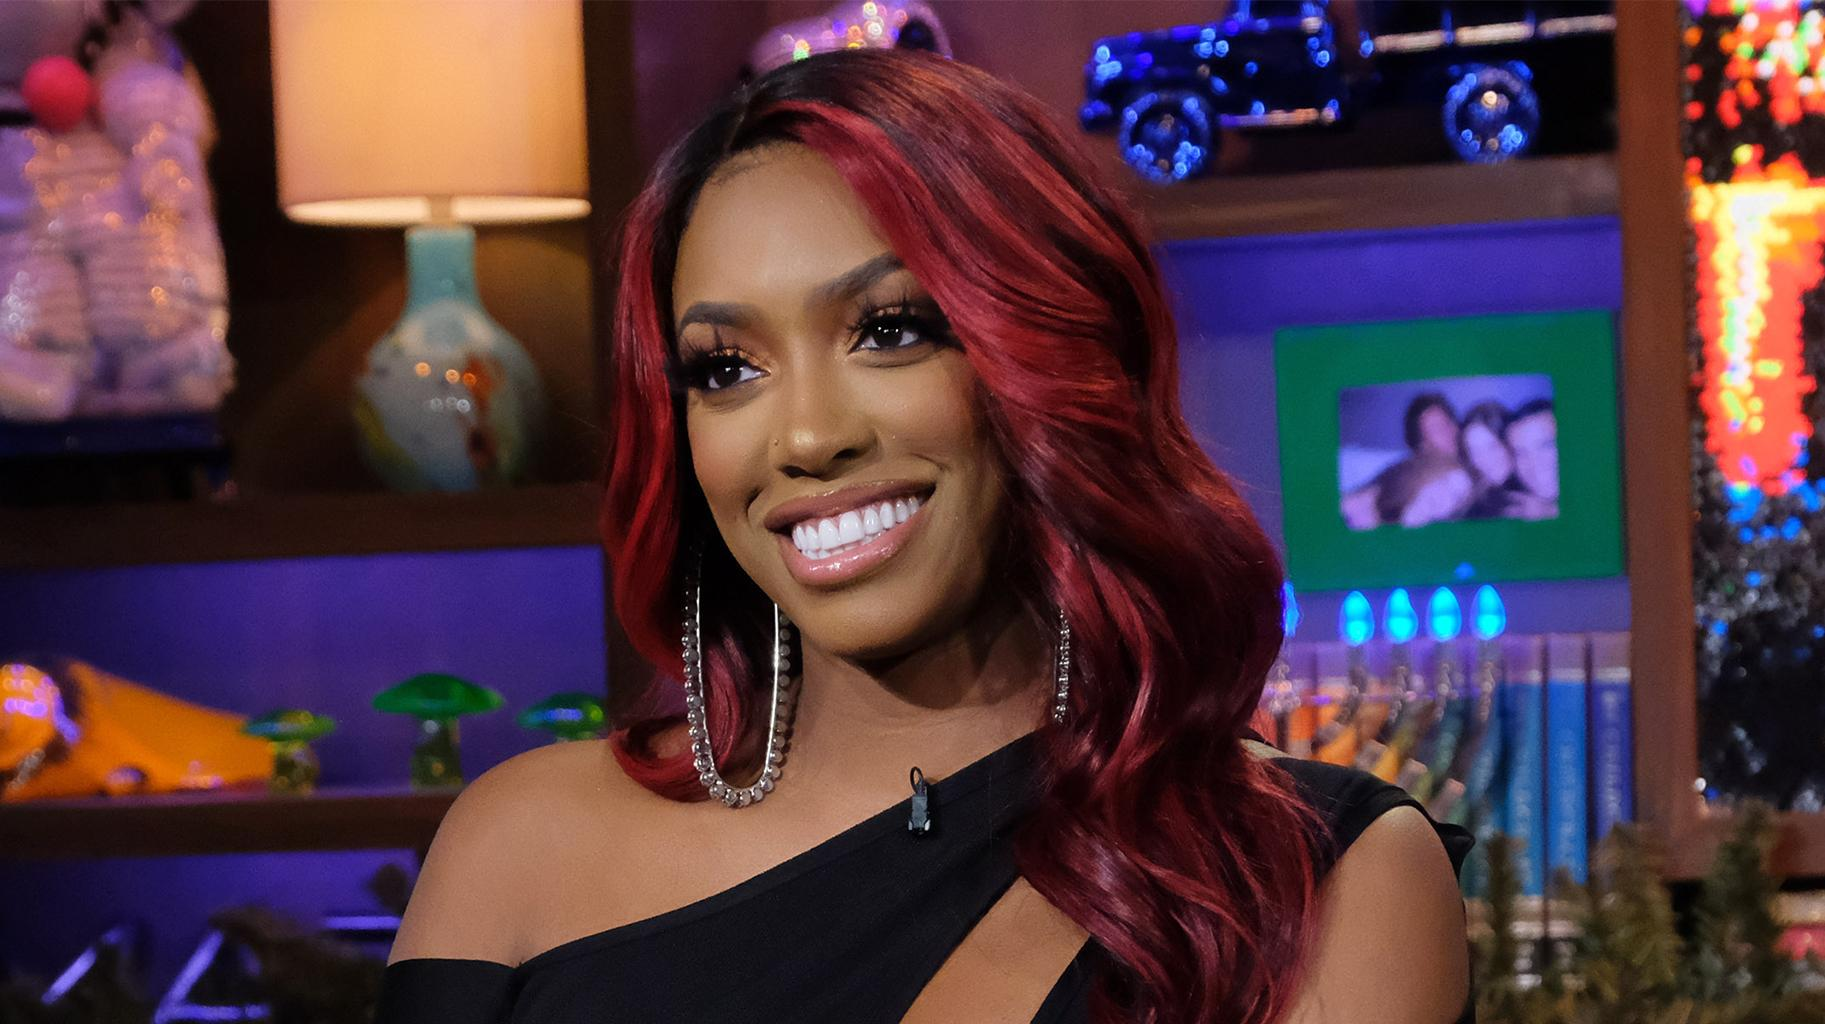 Porsha Williams Looks Dazzling While Presenting The New Bravo Chatroom - See The Video